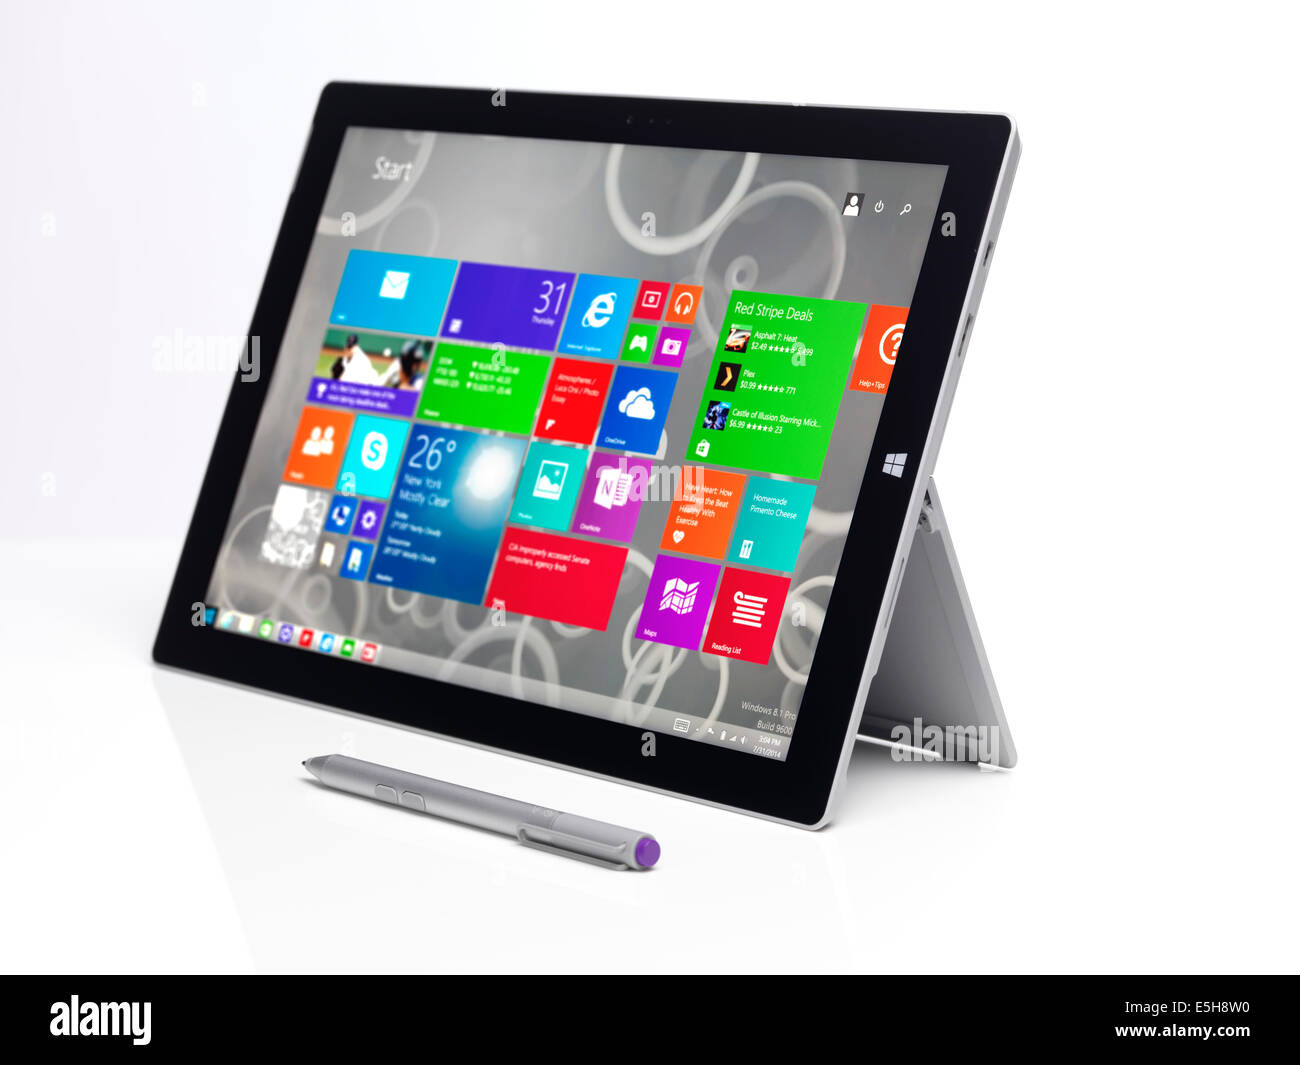 Windows 8 computer - Microsoft Surface Pro 3 Tablet Computer With Windows 8 Start Screen On Display Isolated On White Background